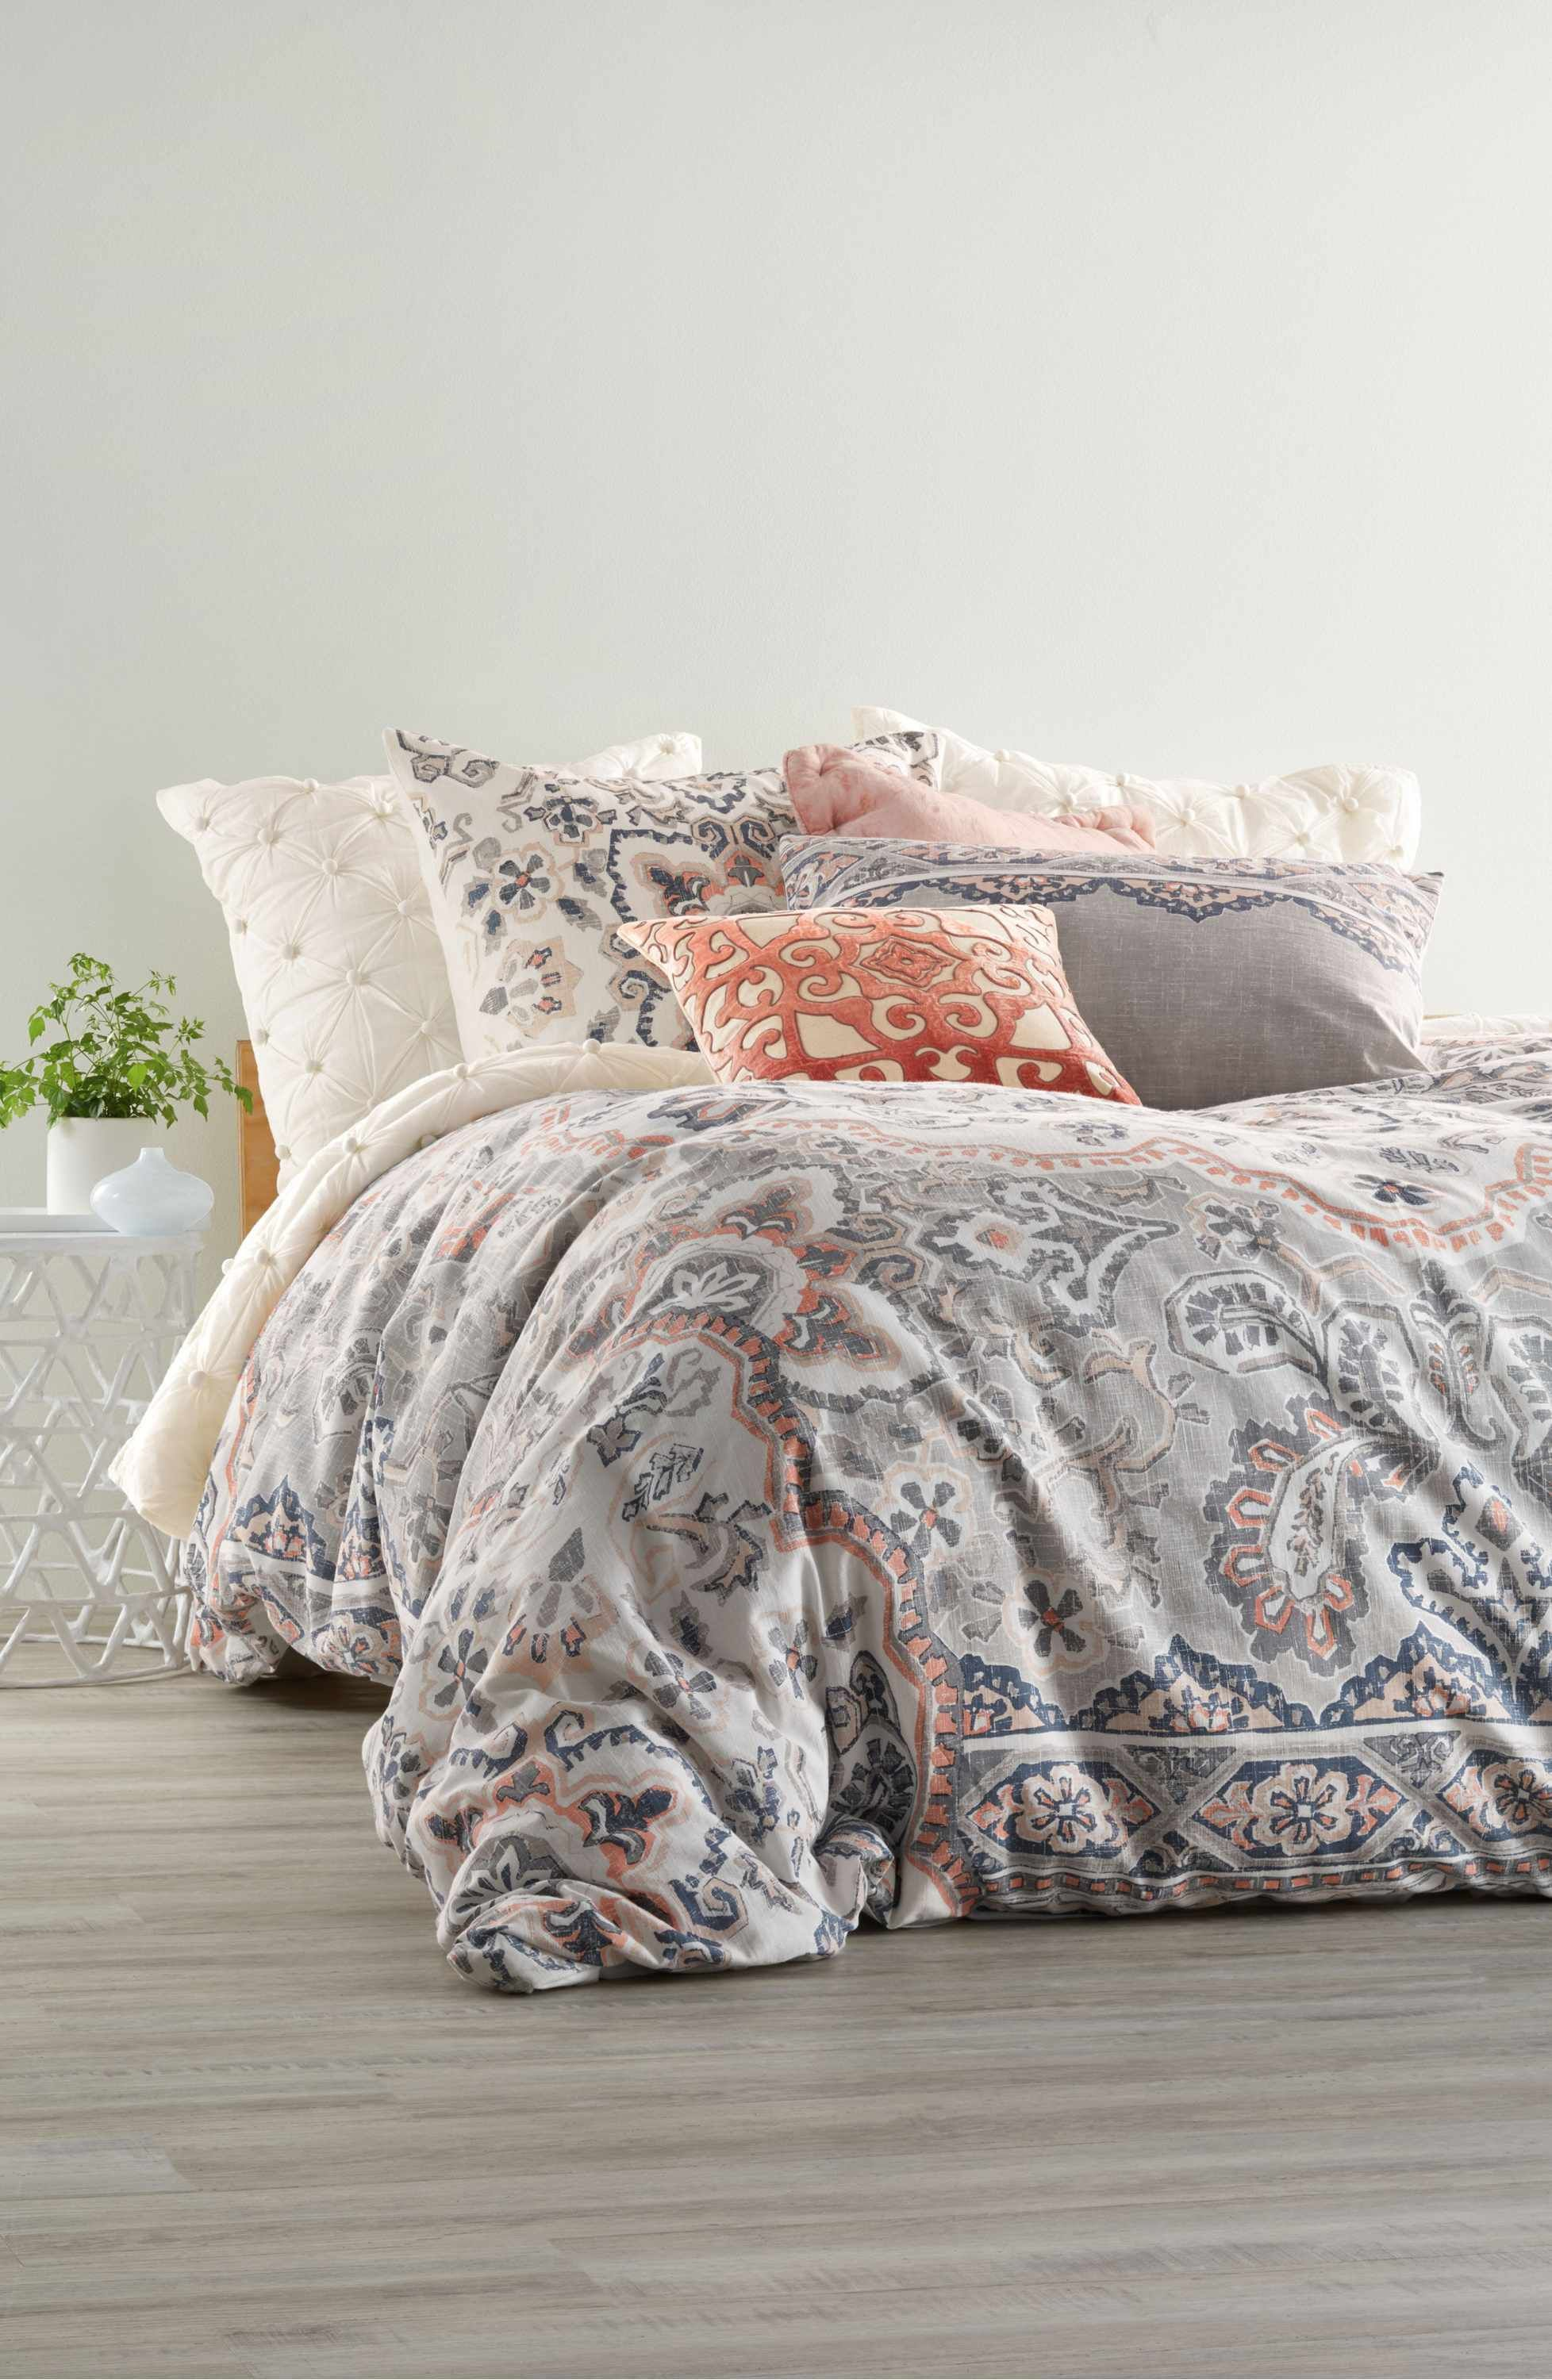 main image nordstrom at home lilah duvet cover waybridge ideas rh pinterest com